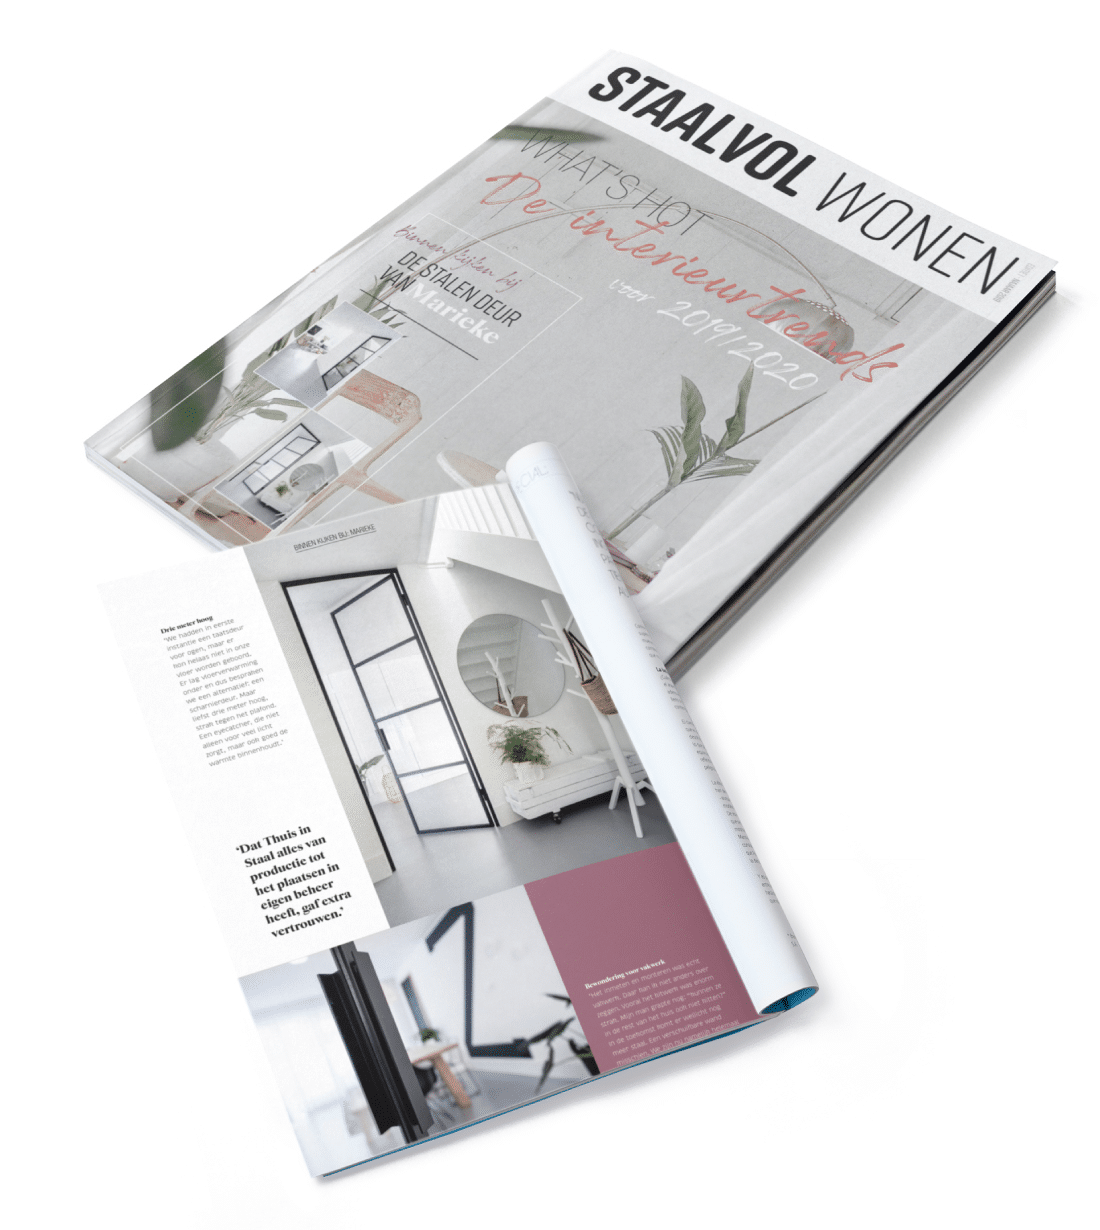 staalvol wonen magazine thuis in staal